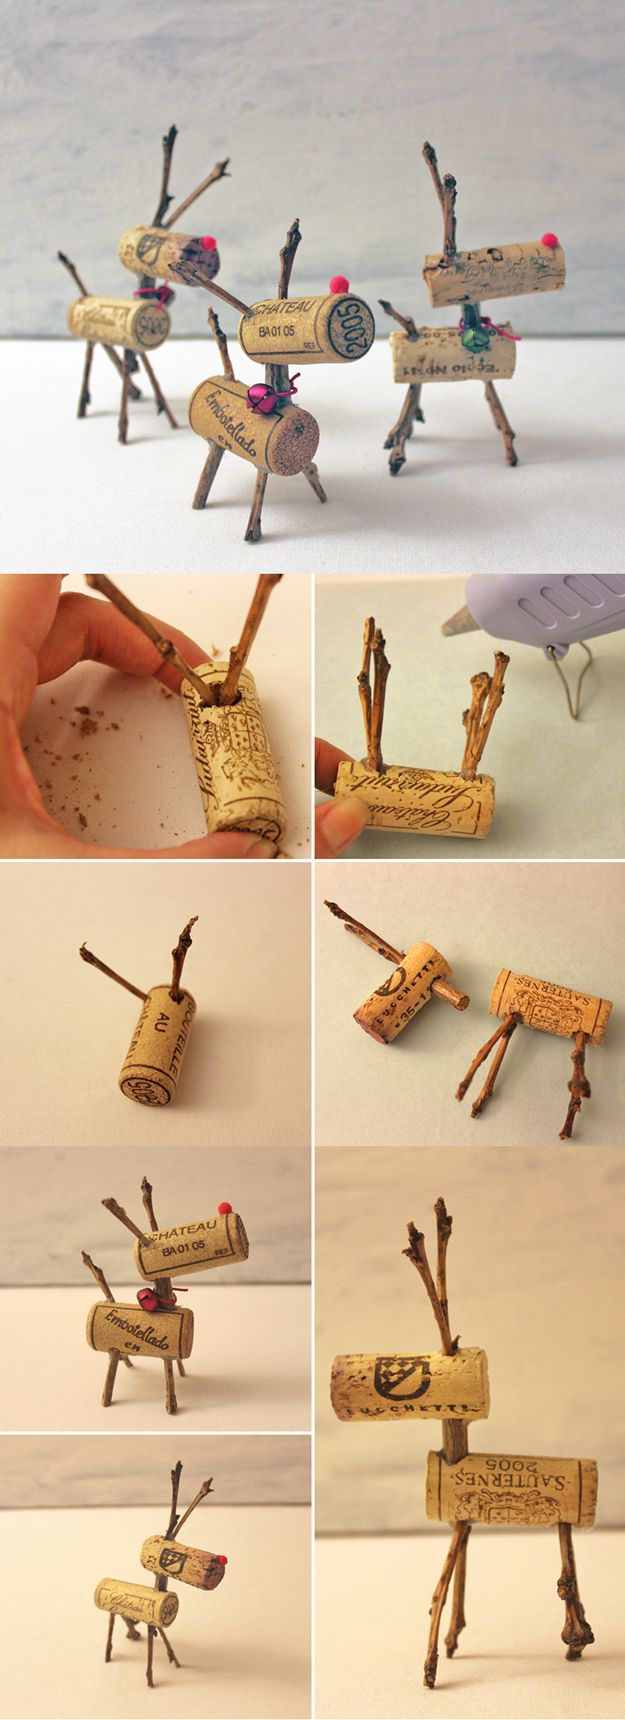 43 More DIY Wine Cork Crafts Ideas | DIY Projects